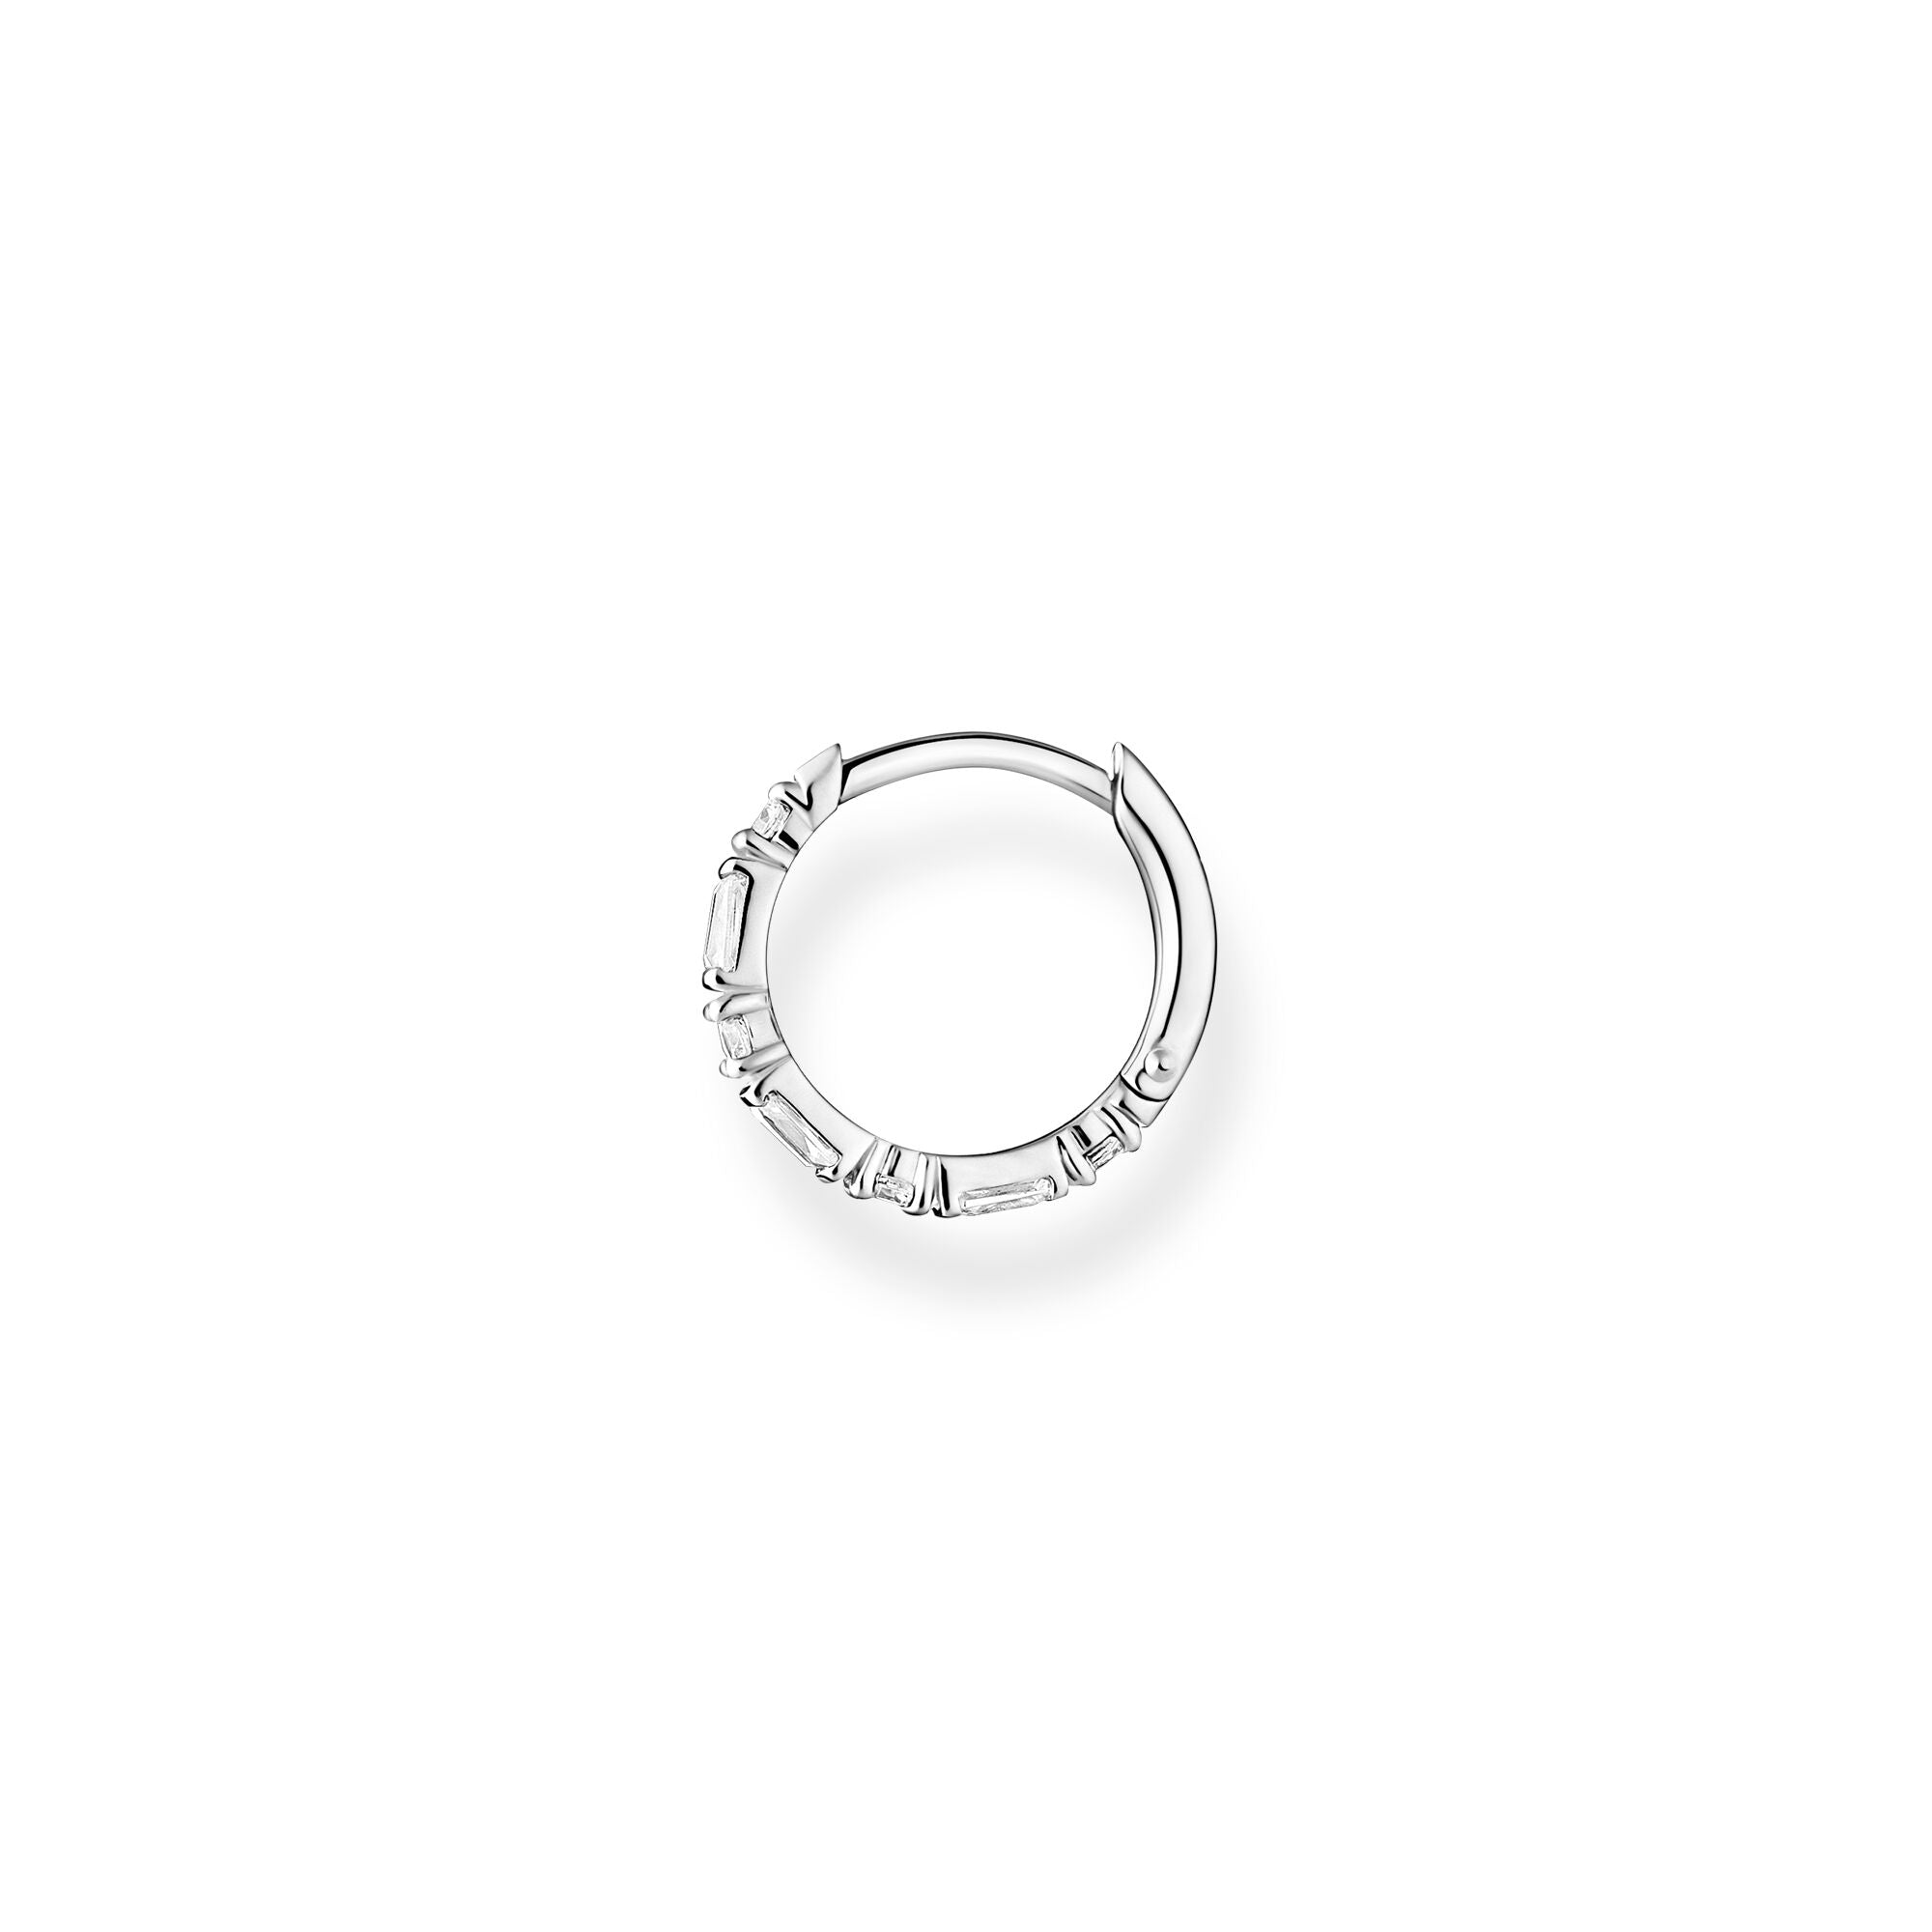 Thomas Sabo sterling silver and white baguette stones, clicker style single hoop earring